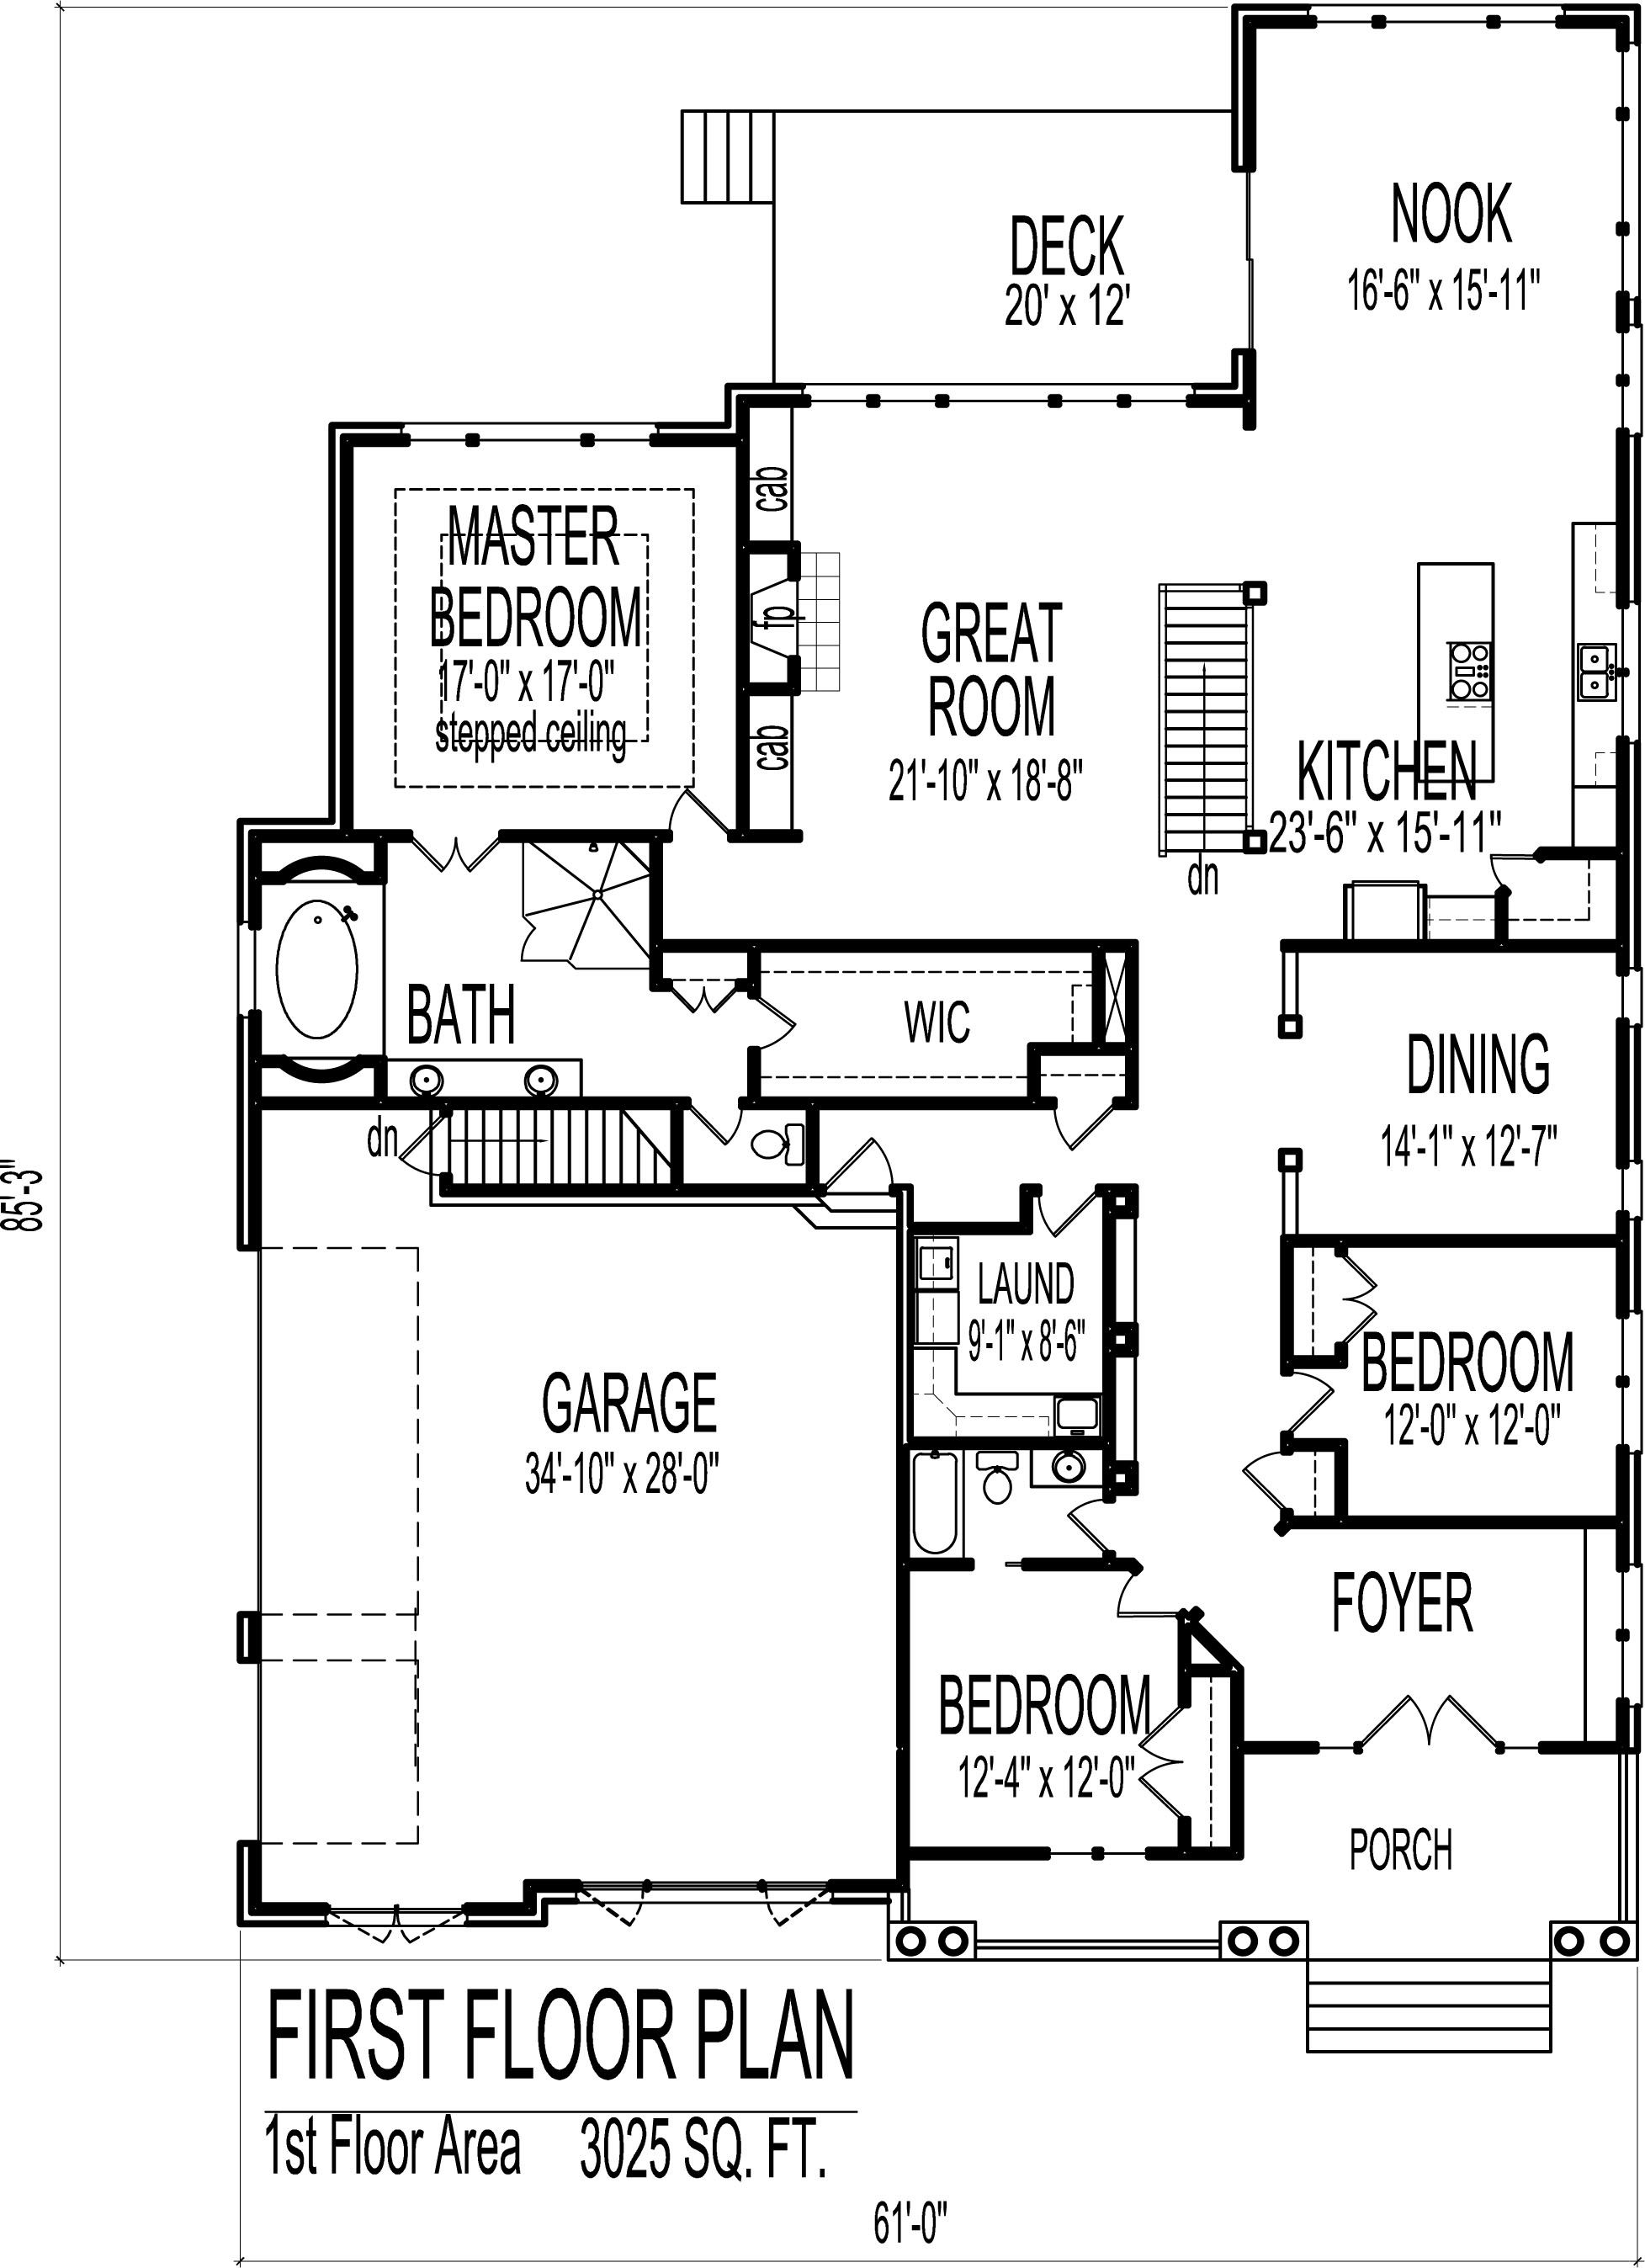 House Site Plan Drawing At Getdrawings